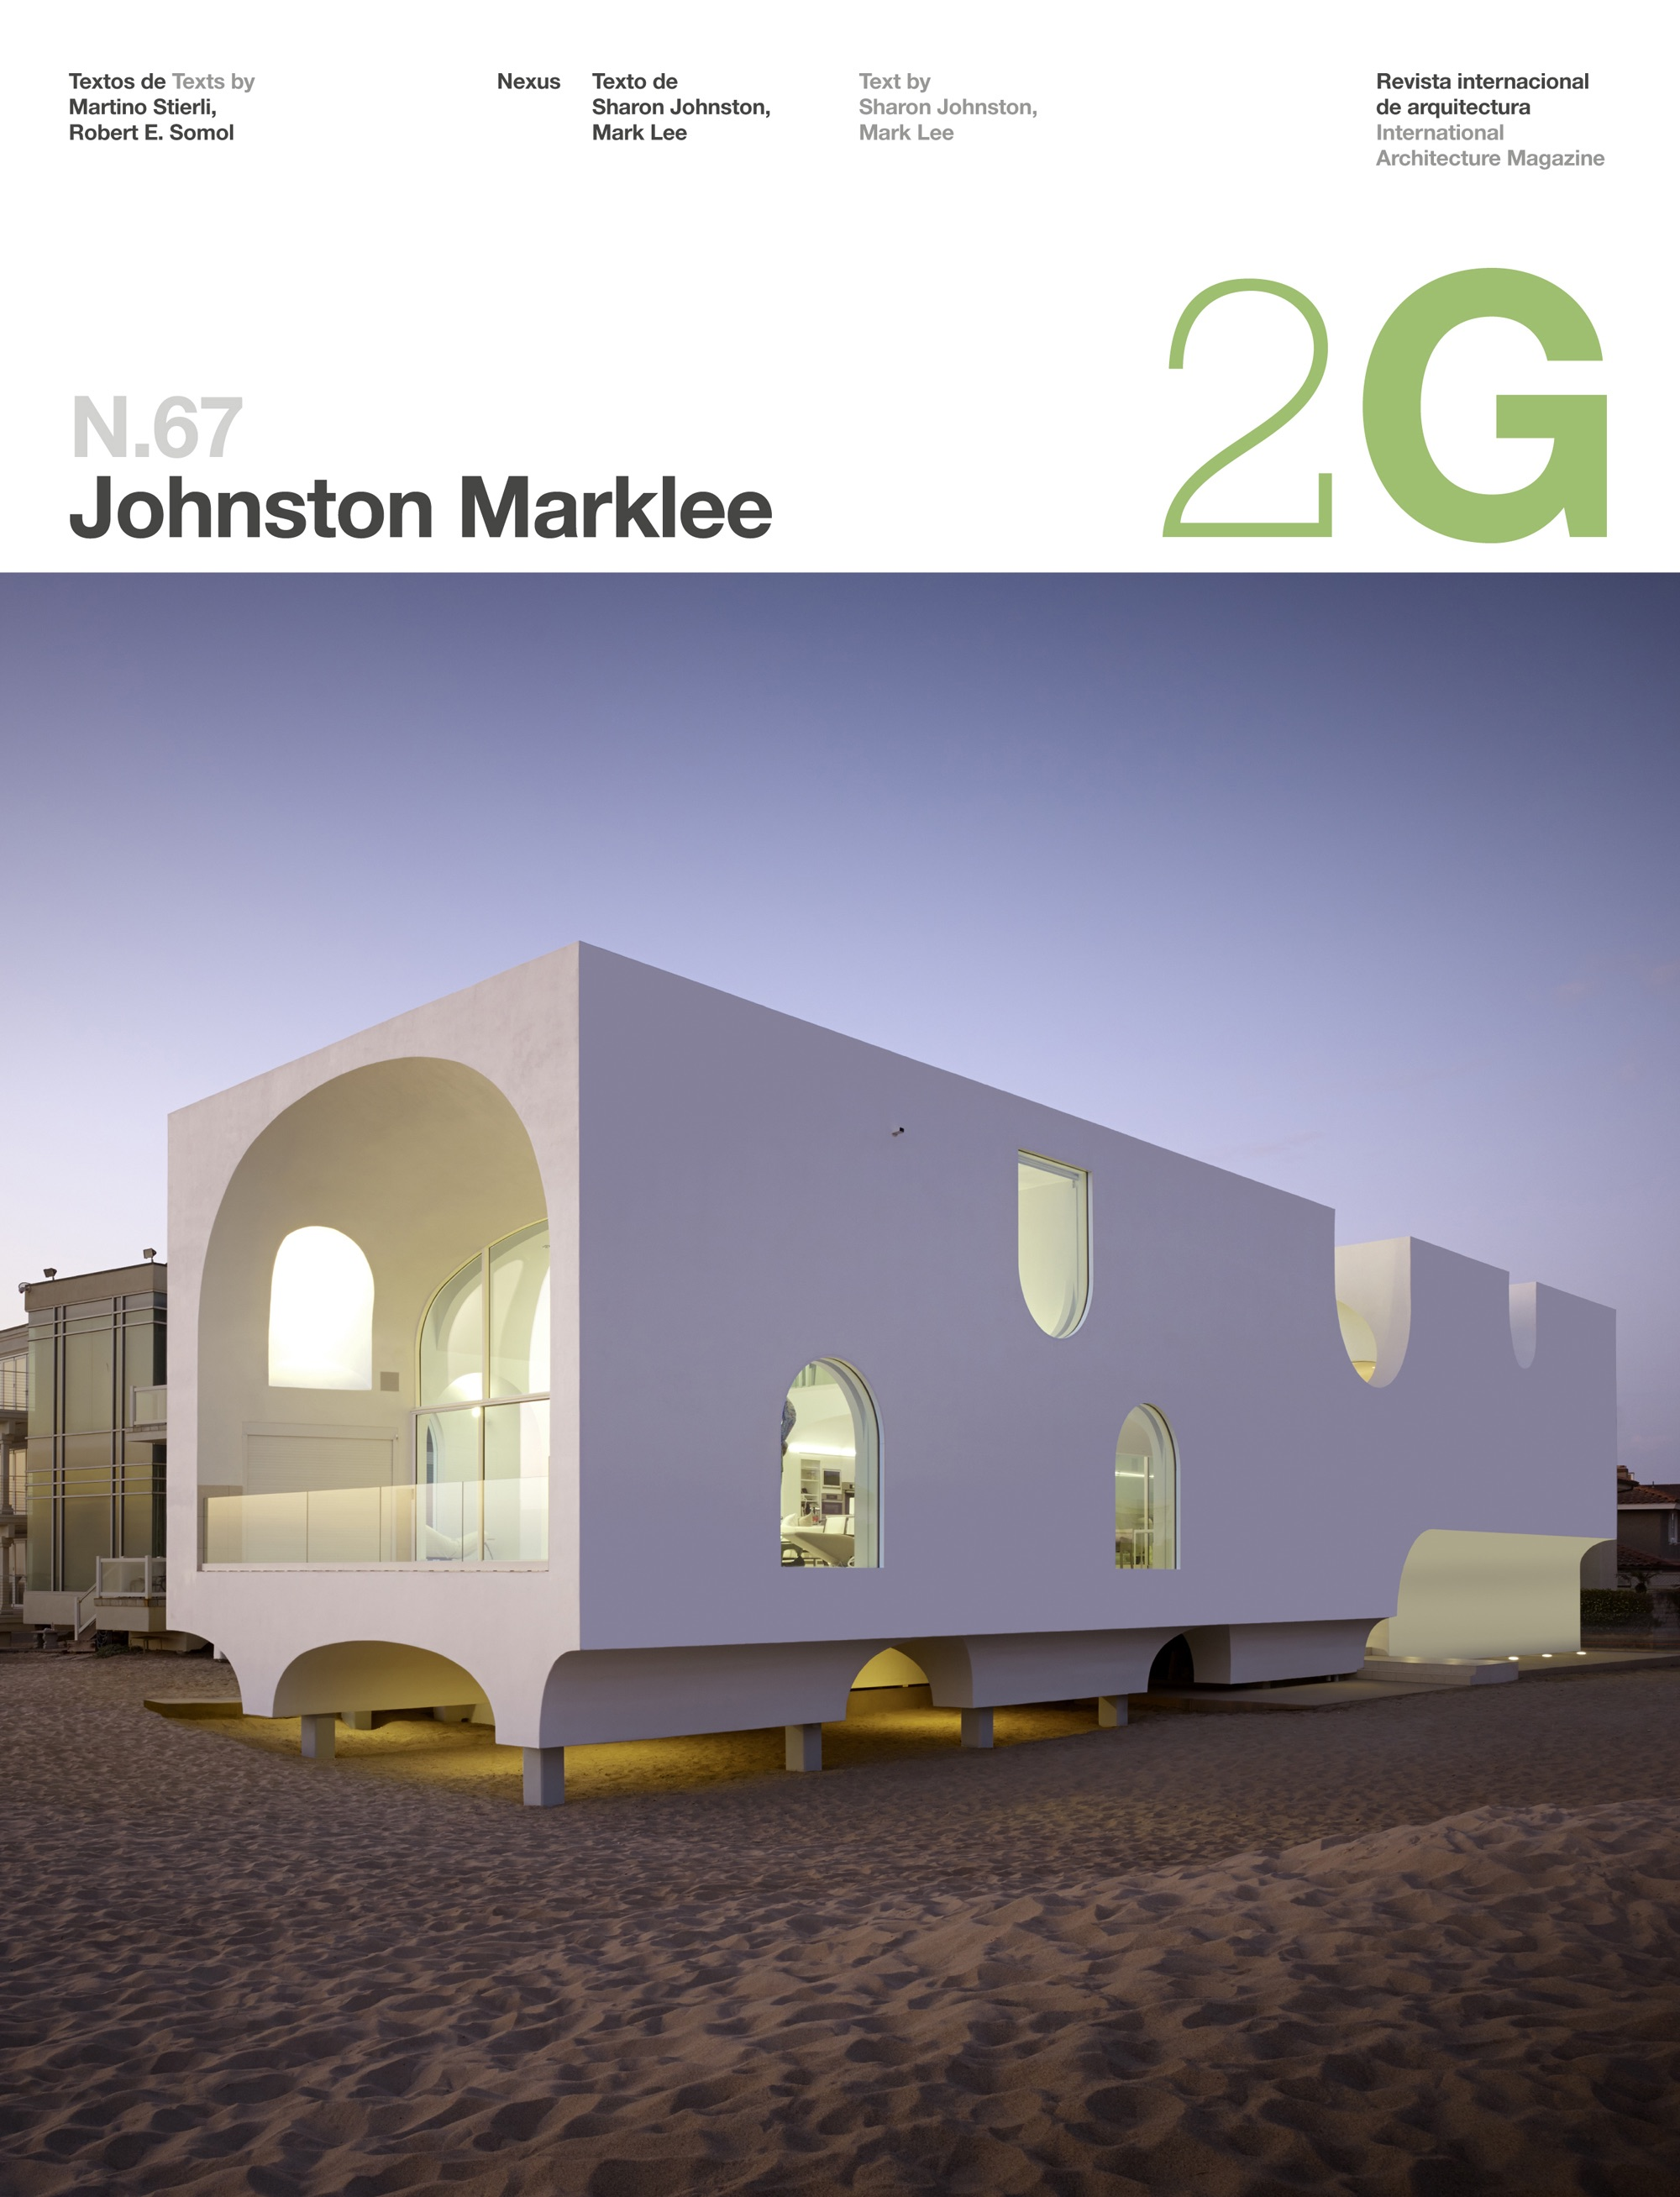 2G N.67 Johnston Marklee by Martino Stierli, Robert E ...